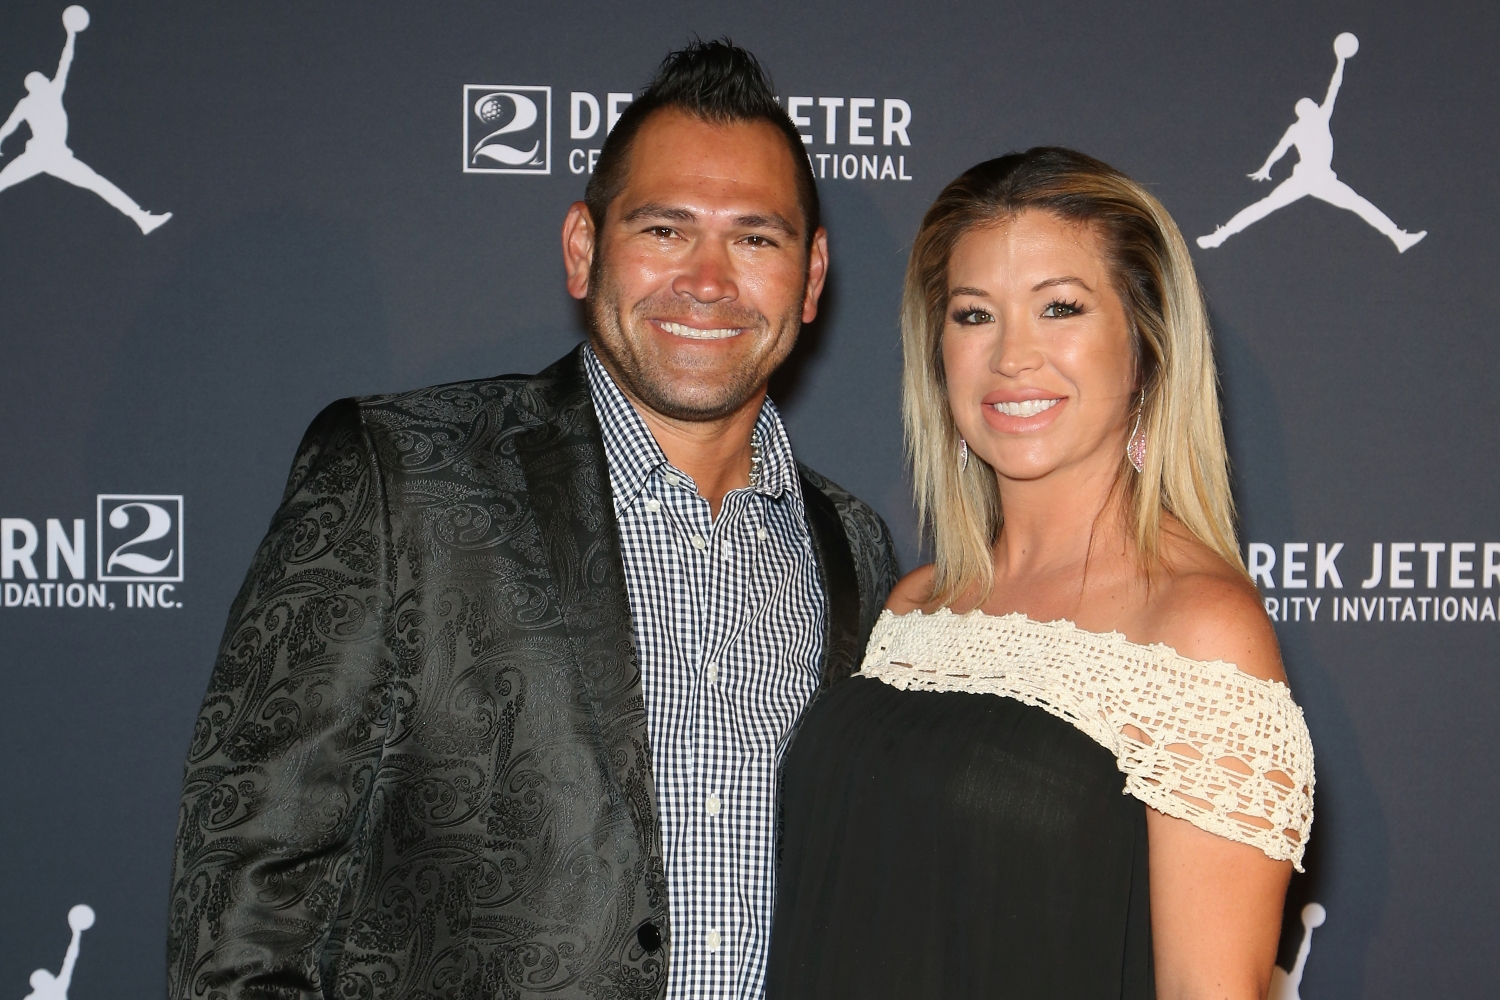 Former MLB player Johnny Damon and his wife, Michelle Damon, arrive at the Liquid Pool Lounge for the kickoff of Derek Jeter's Celebrity Invitational at the Aria Resort & Casino.